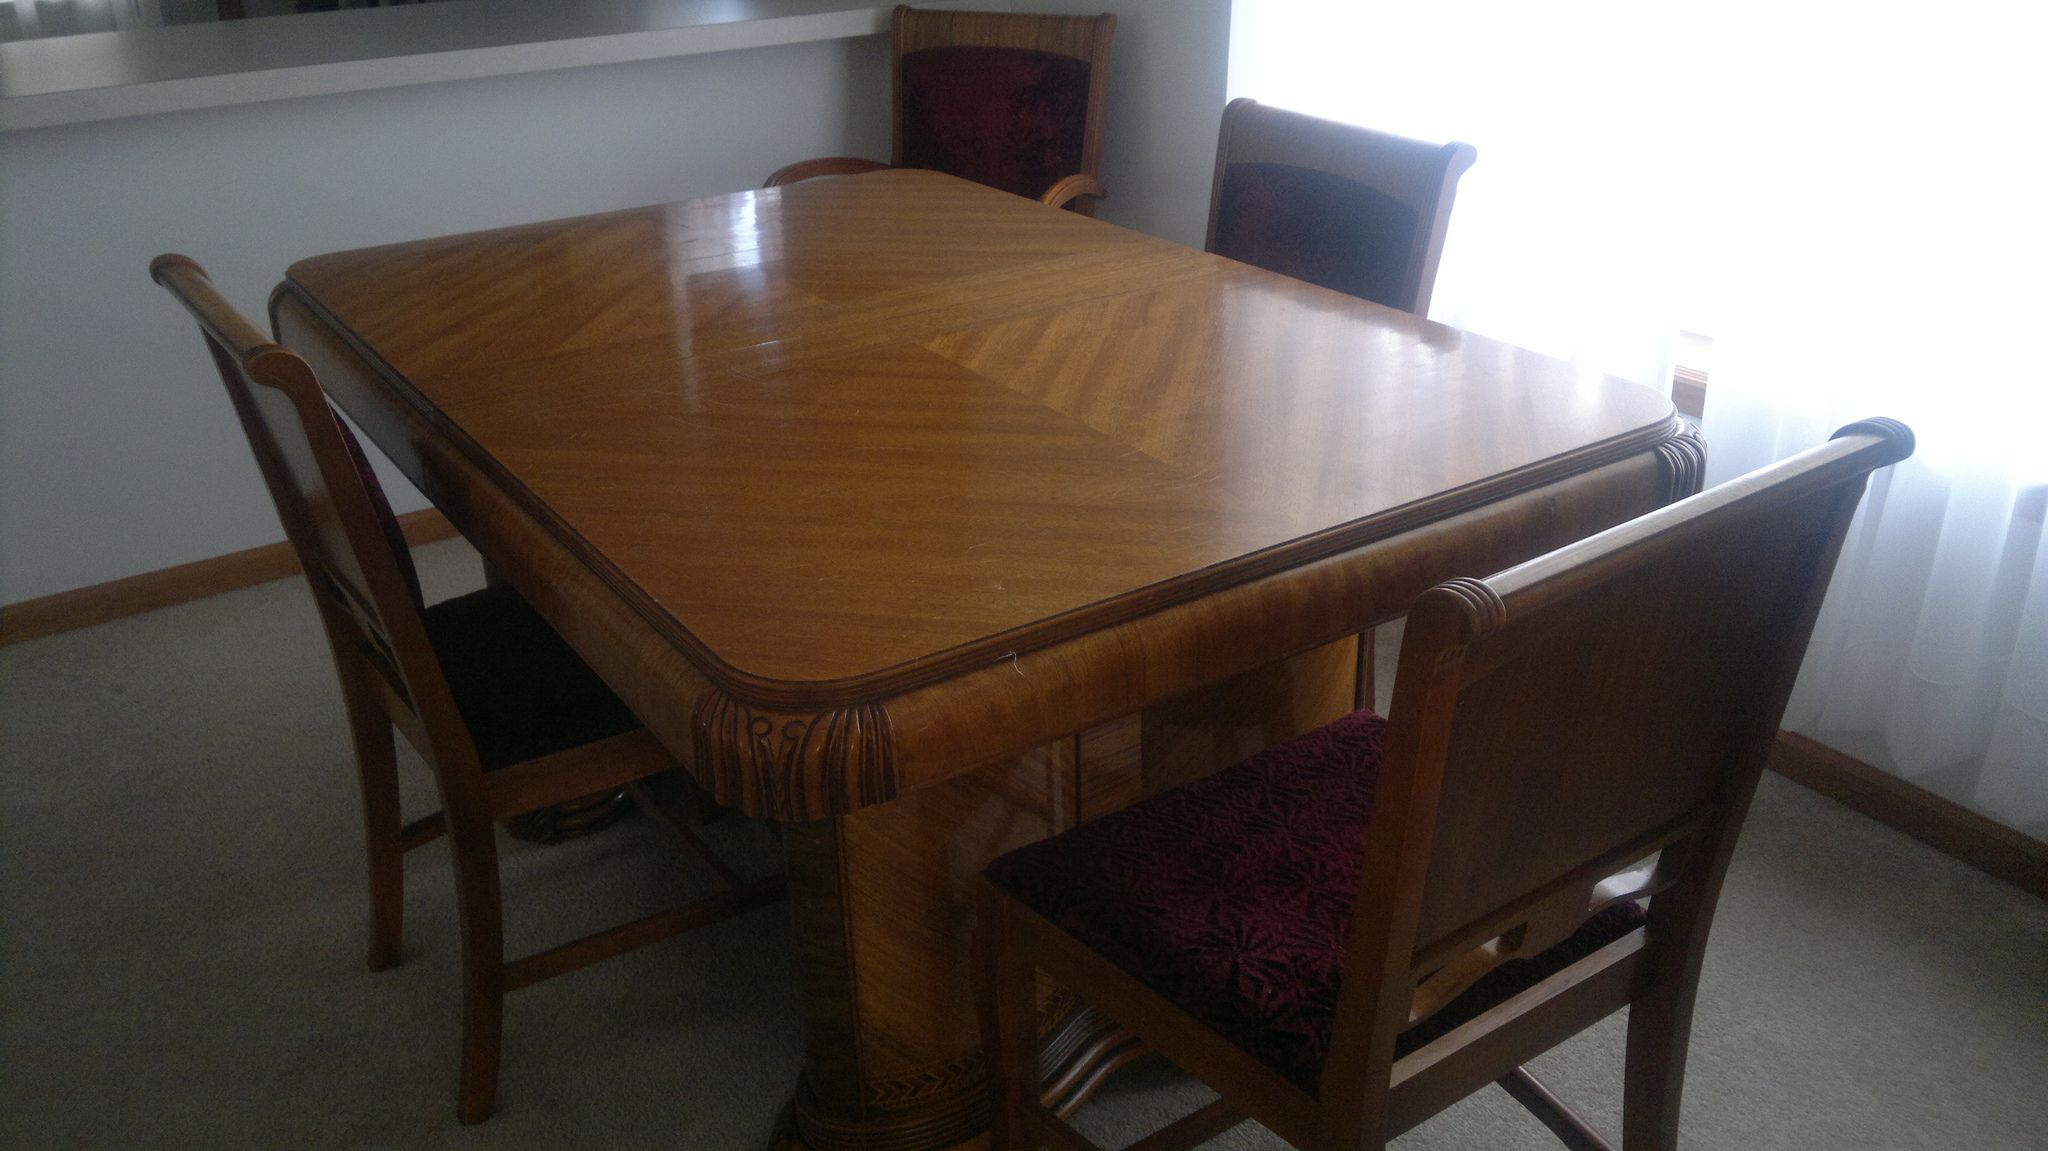 Early 1940 S Art Deco Dining Table On Top W 6 Chairs Dark Red Coverings Original Dining Table Dining Table